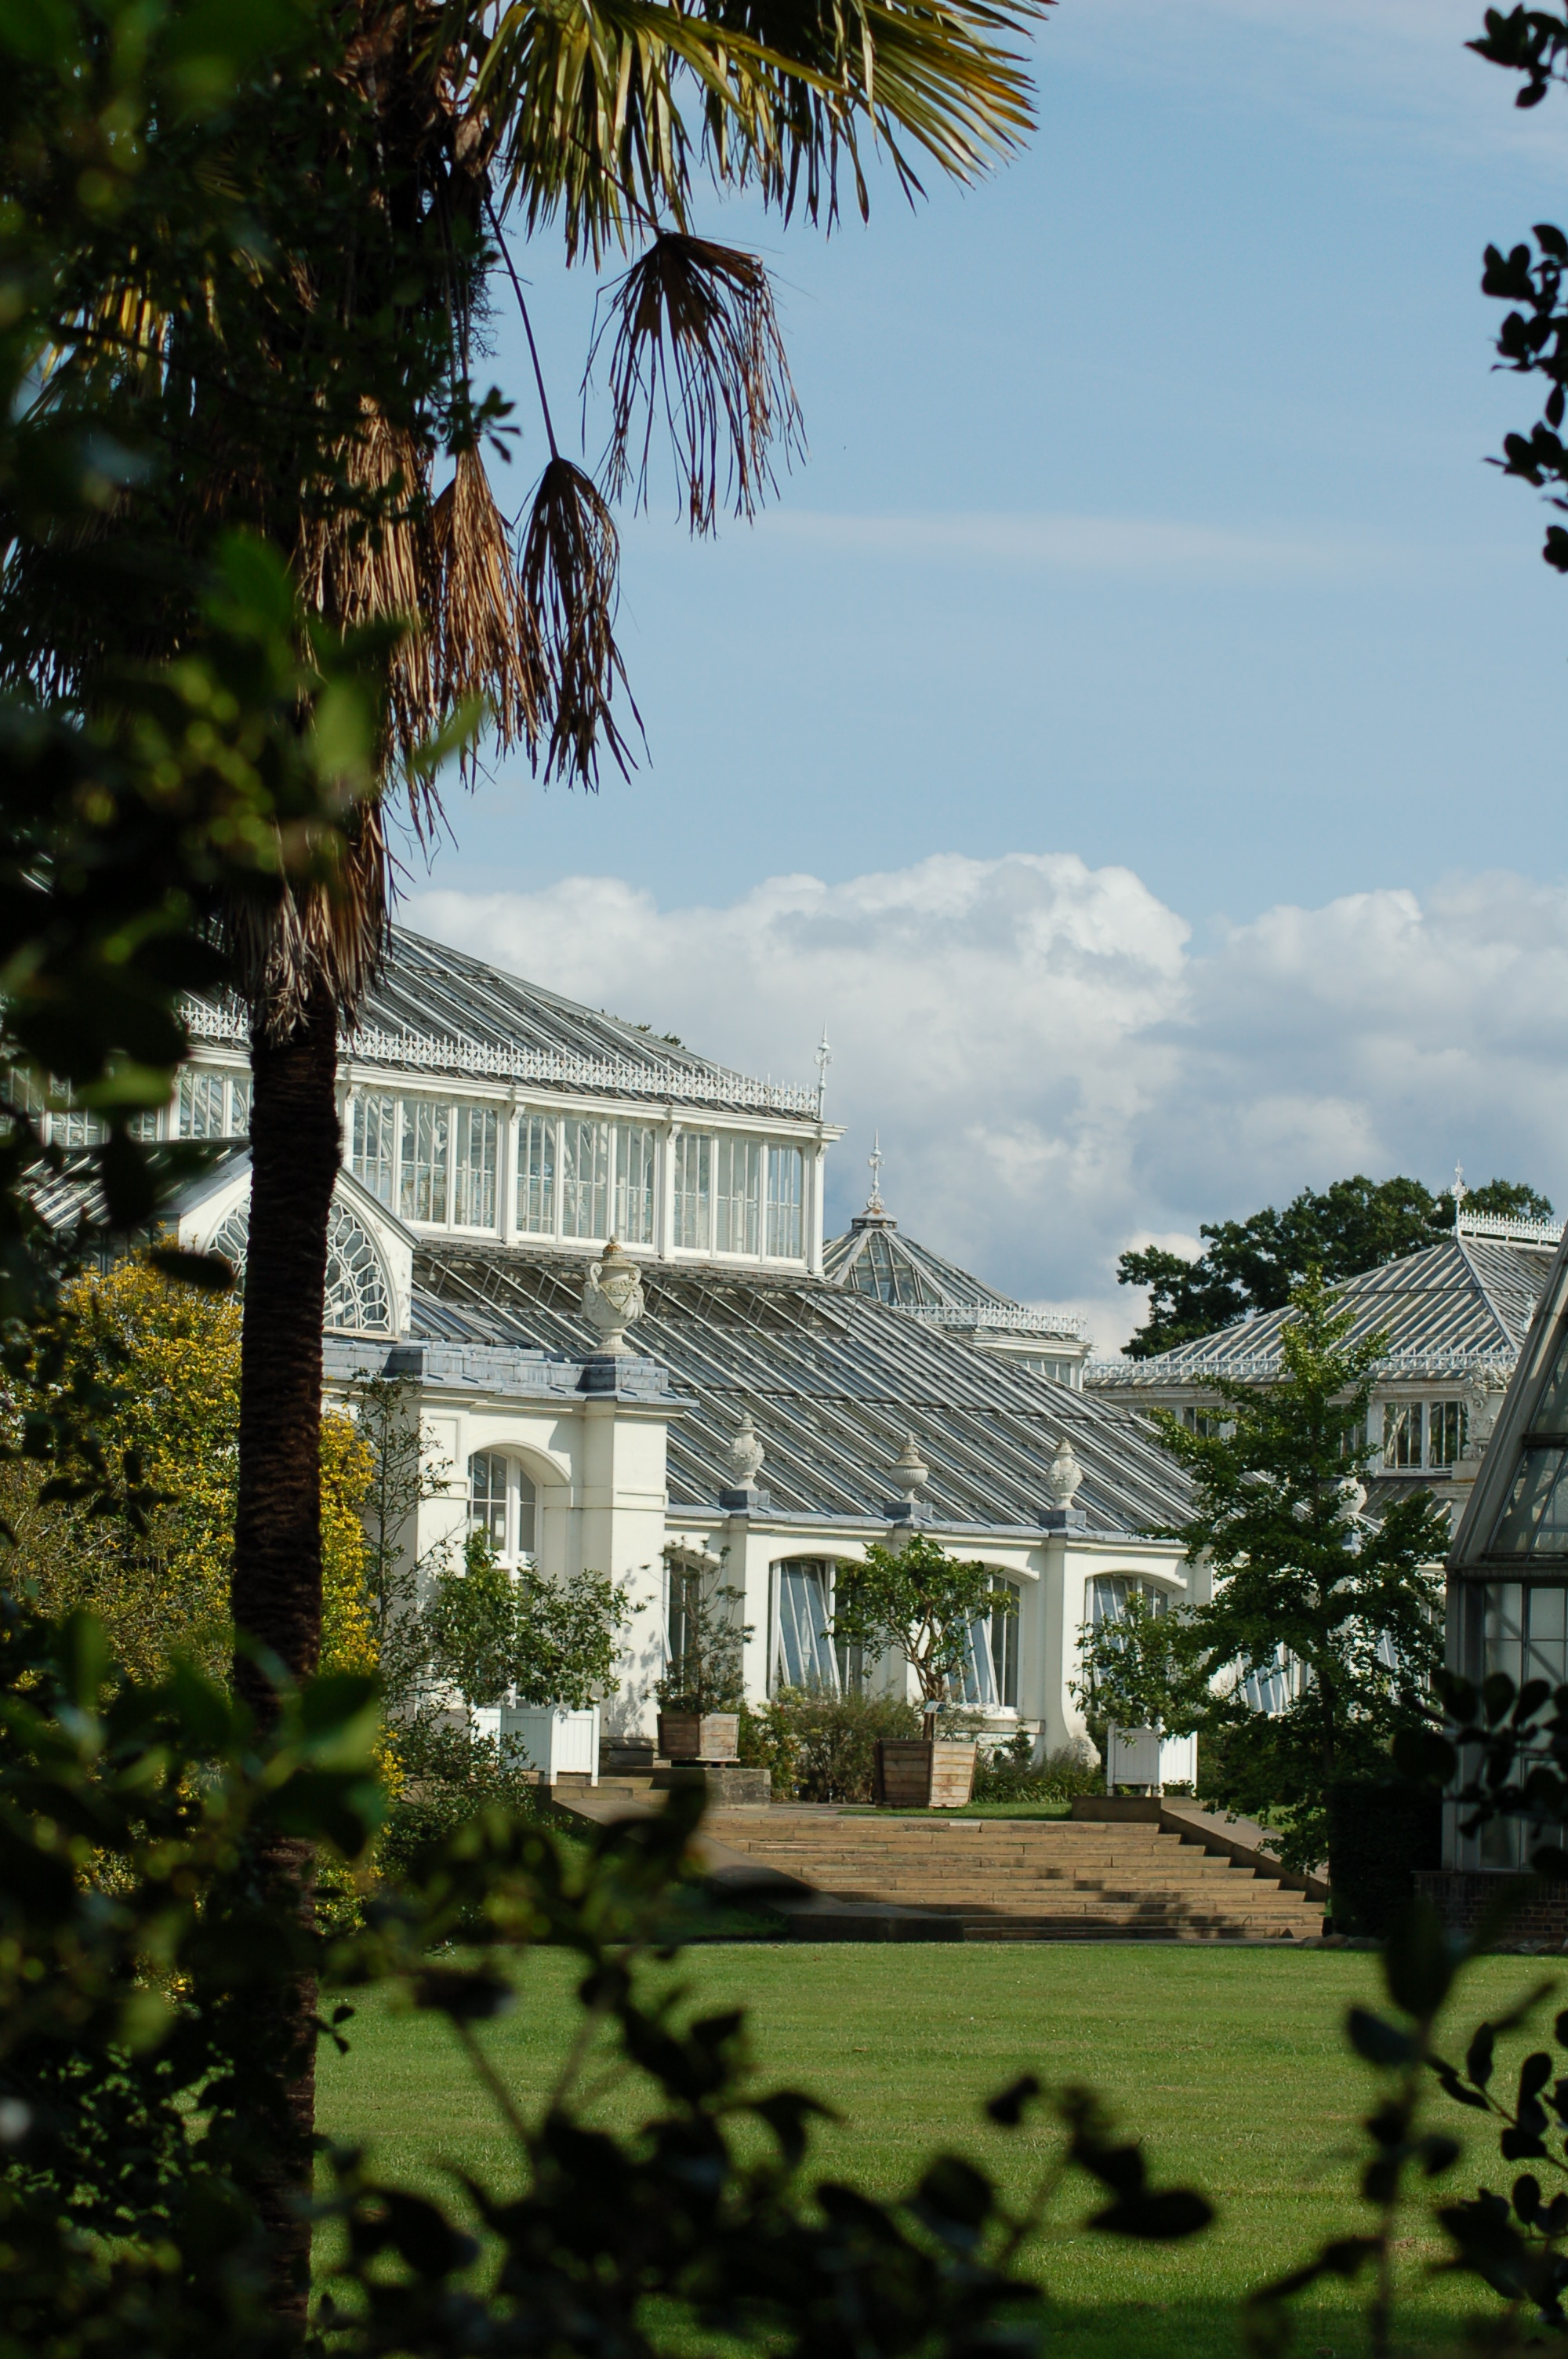 london temperate house in kew gardens